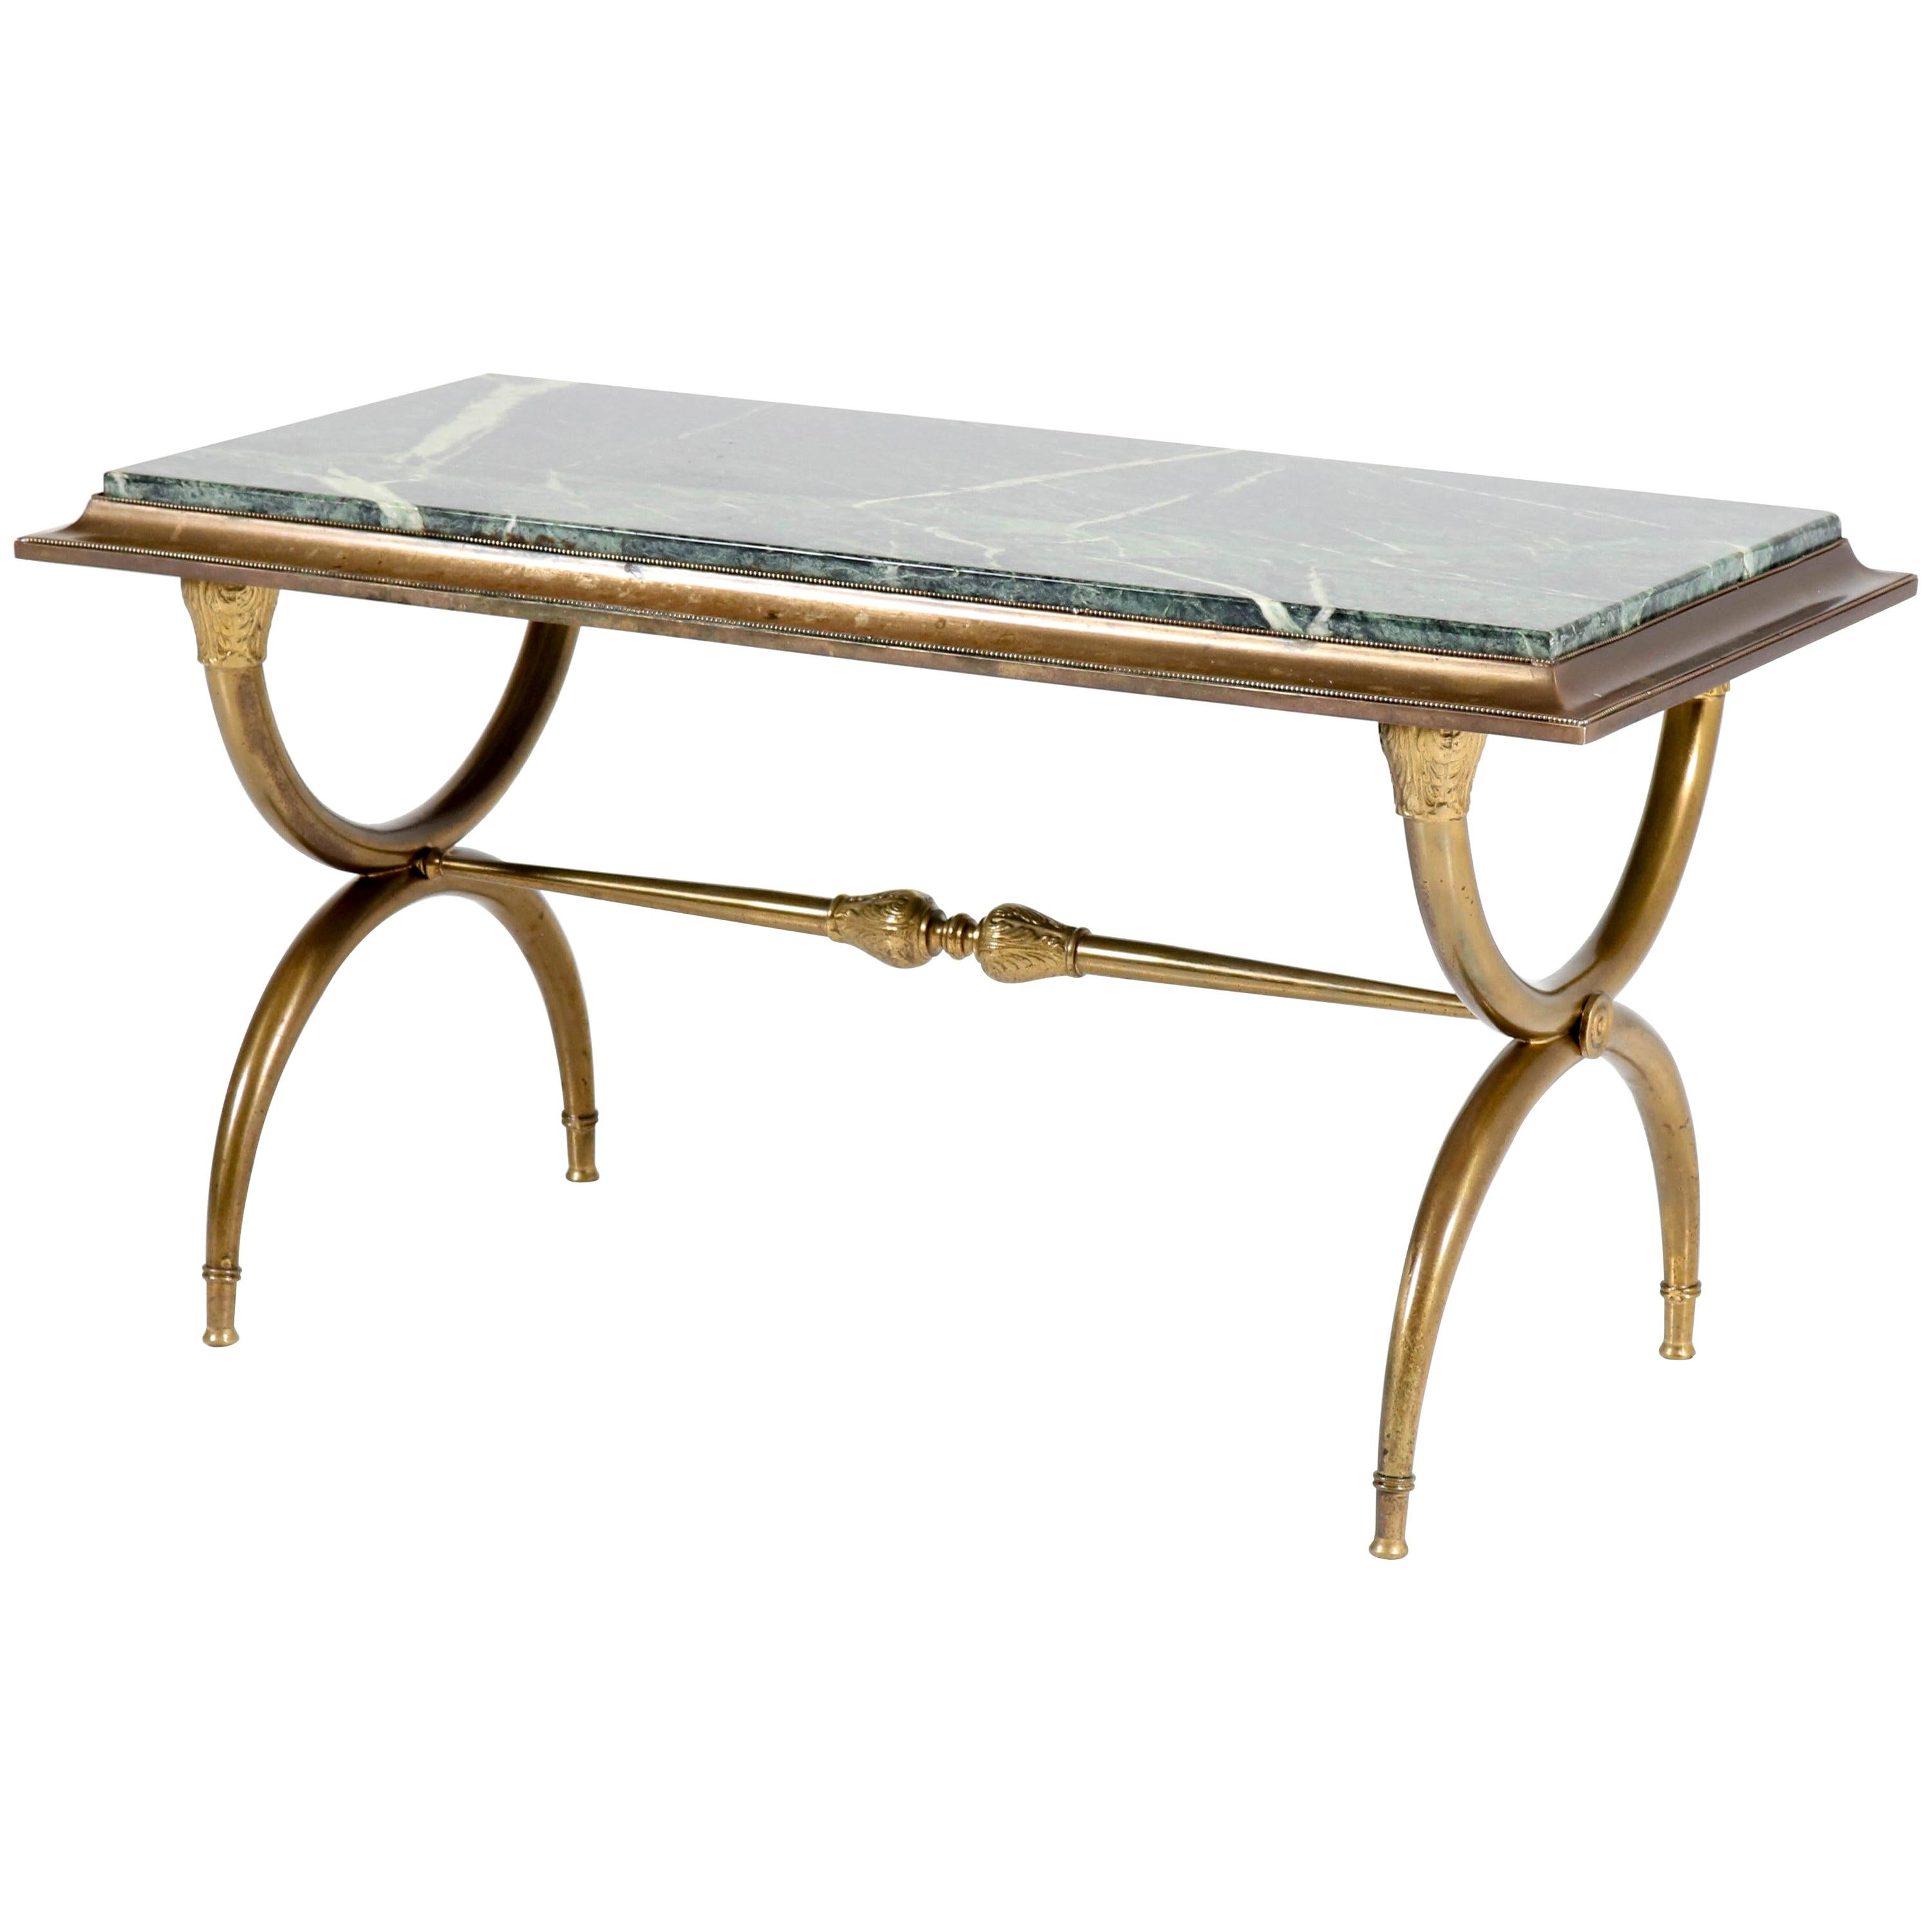 French Brass Hollywood Regency Maison Baguès Style Coffee Table, 1940s